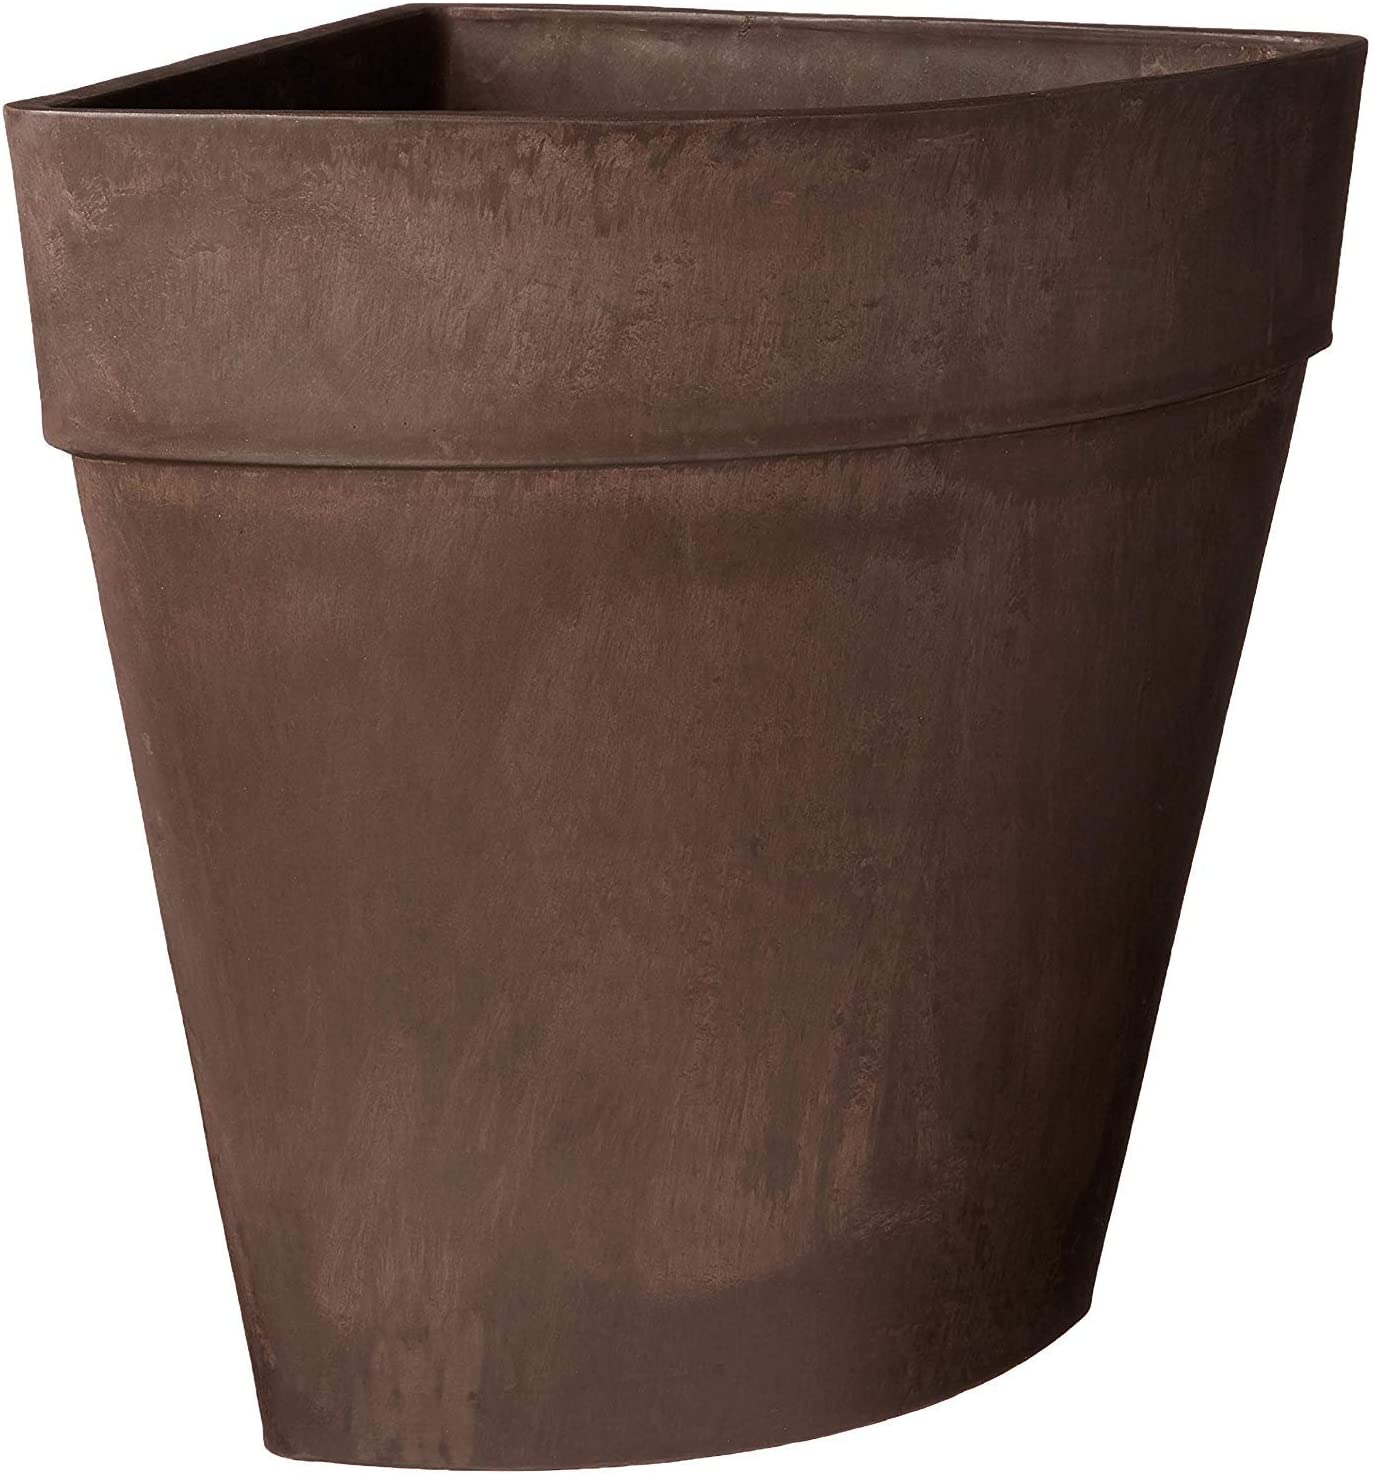 """Arcadia Garden Products HA45C Traditional Corner Pot, 13.5 by 17.5"""", Chocolate, Inches"""